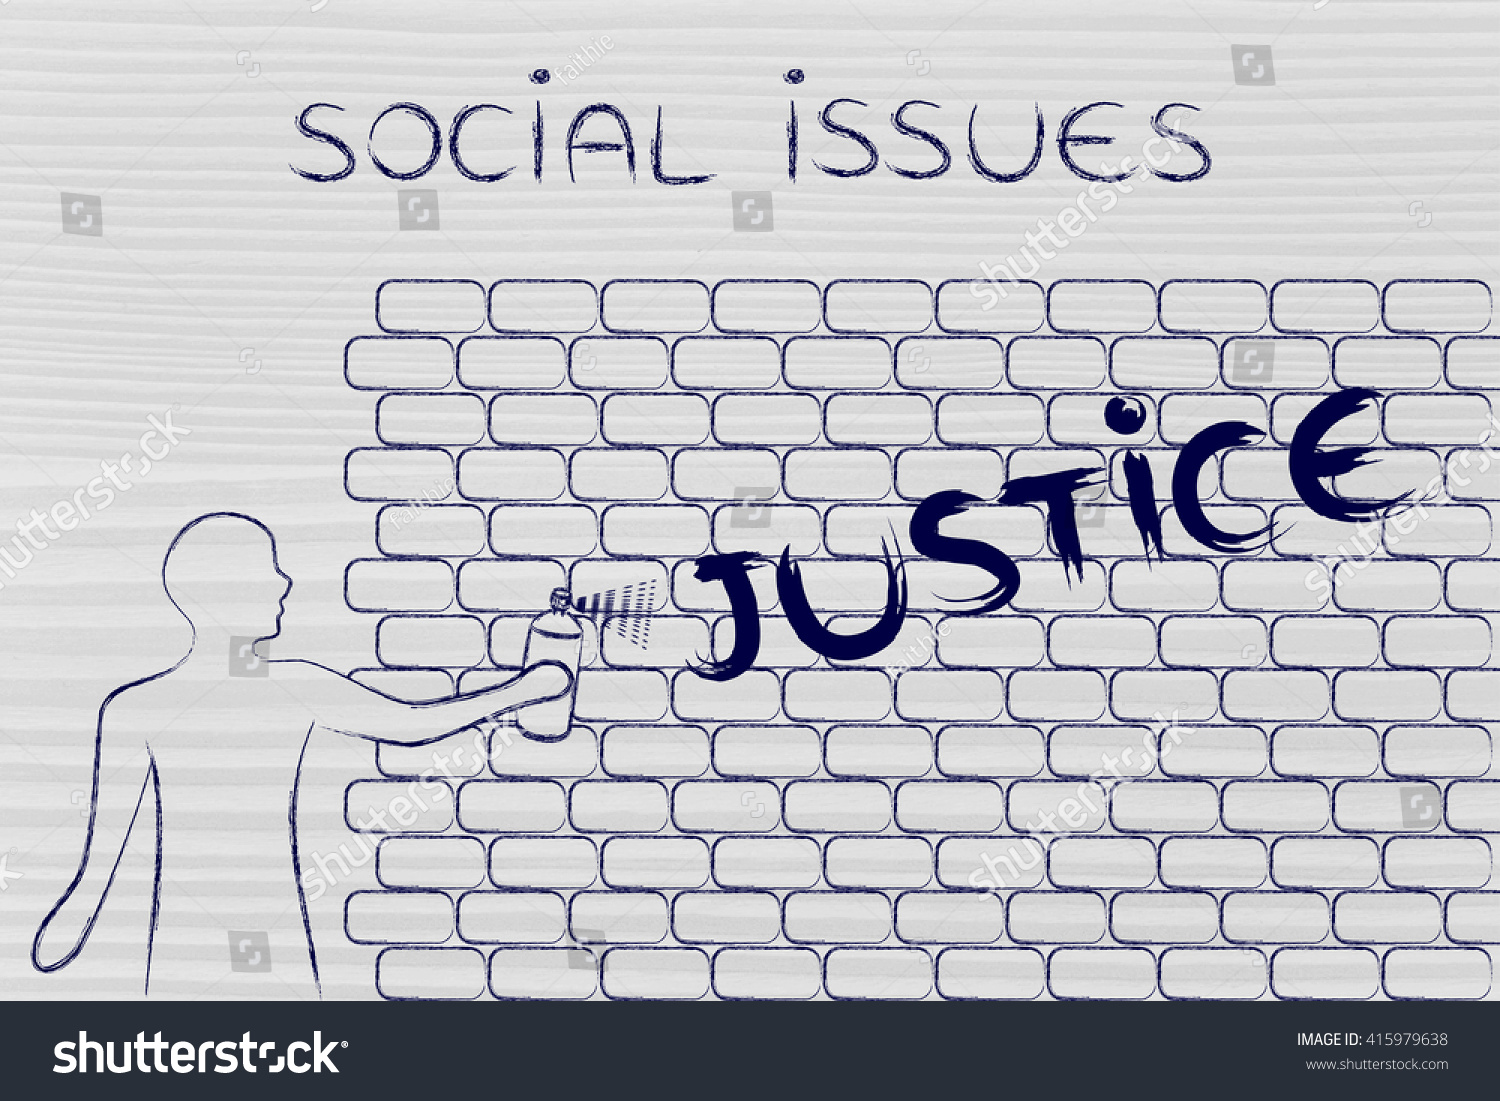 Person spray paint writing word justice stock illustration person with spray paint writing the word justice as wall graffiti social issues theme ccuart Image collections